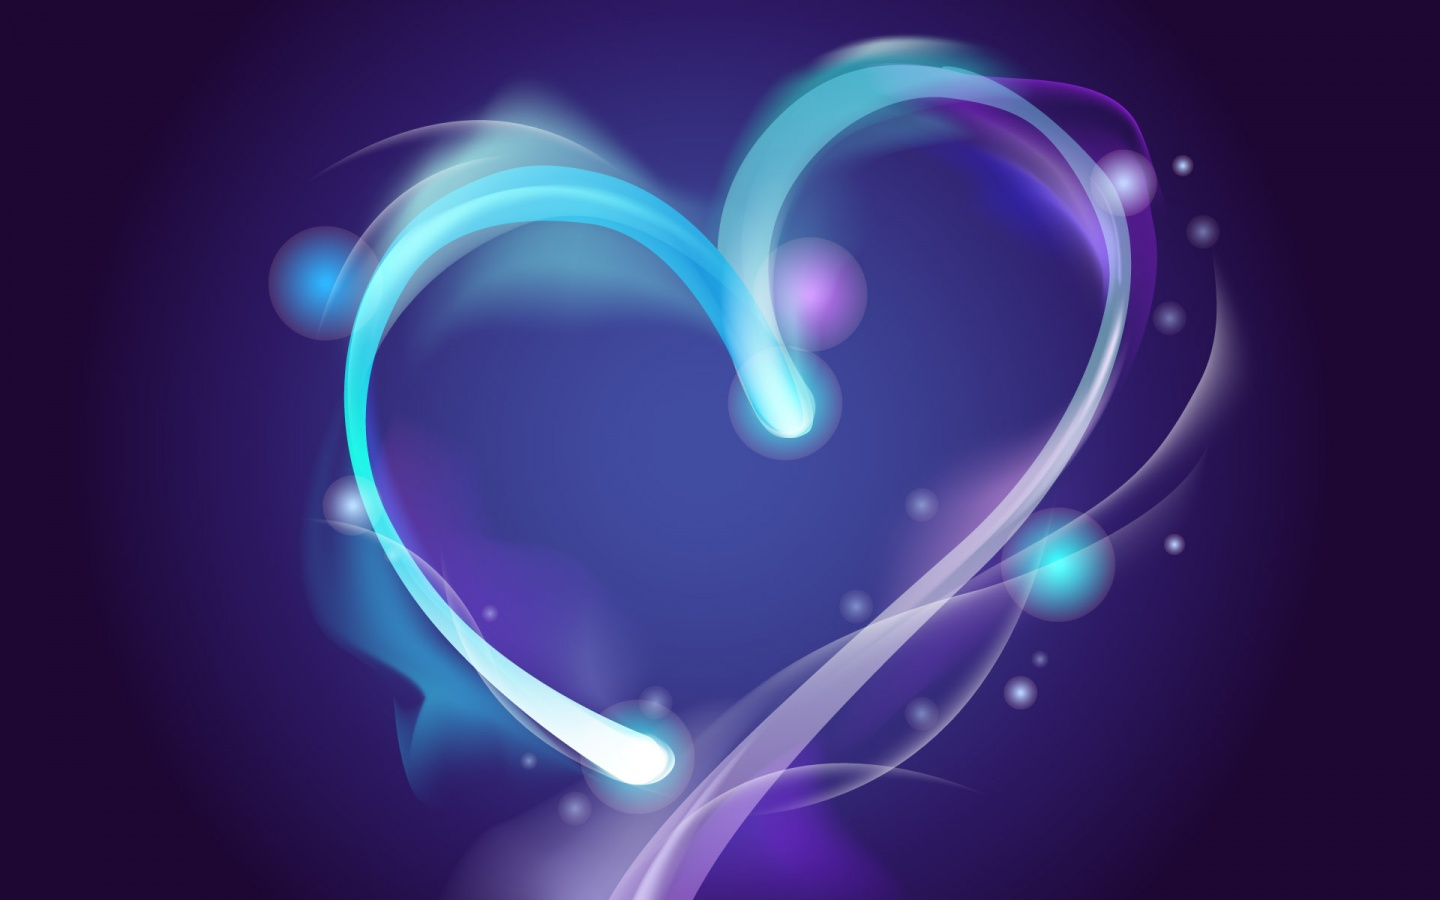 Cute Neon Heart Wallpaper